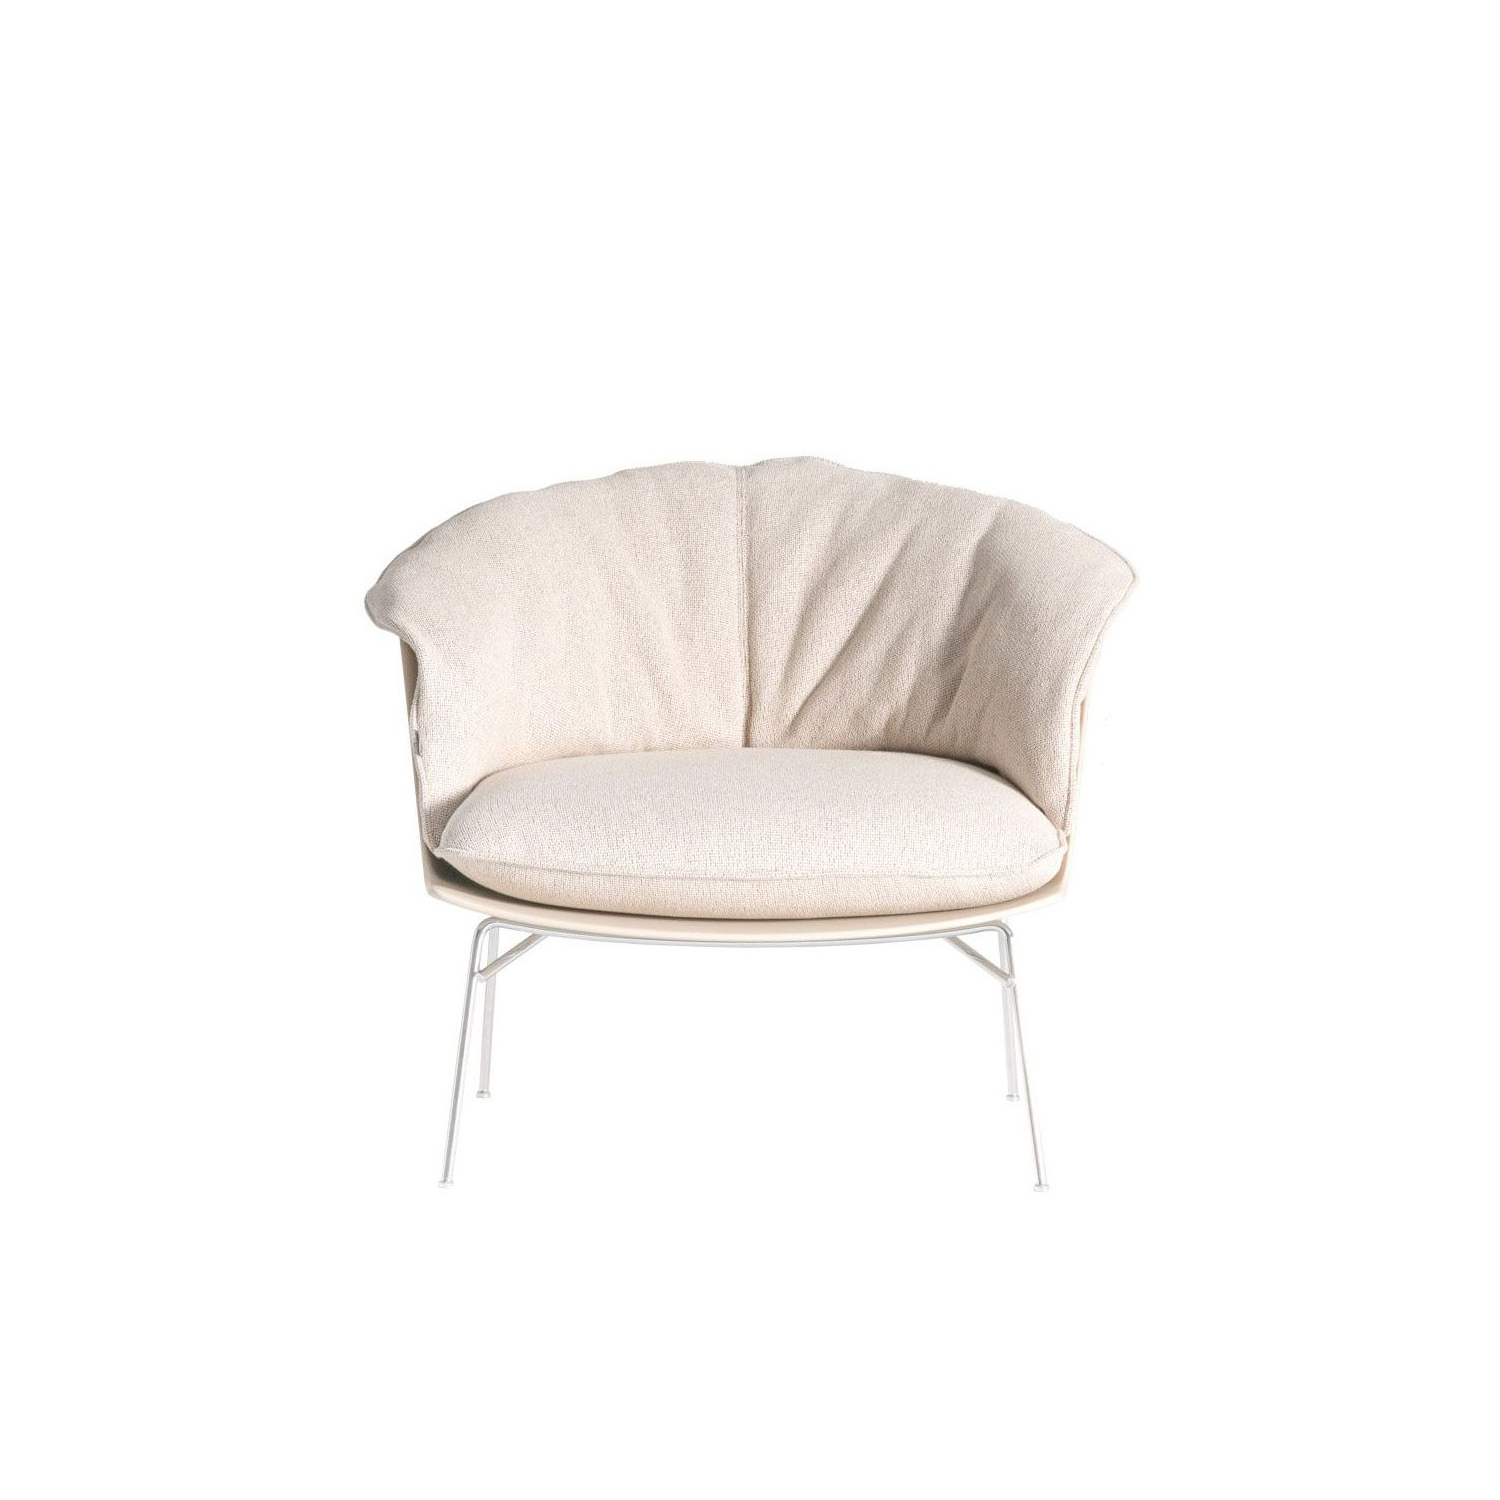 Moon Armchair Fabric Upholstered - Armchair with shell in baydur600 matt lacquered in the colors red brick, beige and glossy lacquered in black color. Seat cushion with removable fabric or leather cover. Supporting structure in steel wire in polished chrome finish. | Matter of Stuff